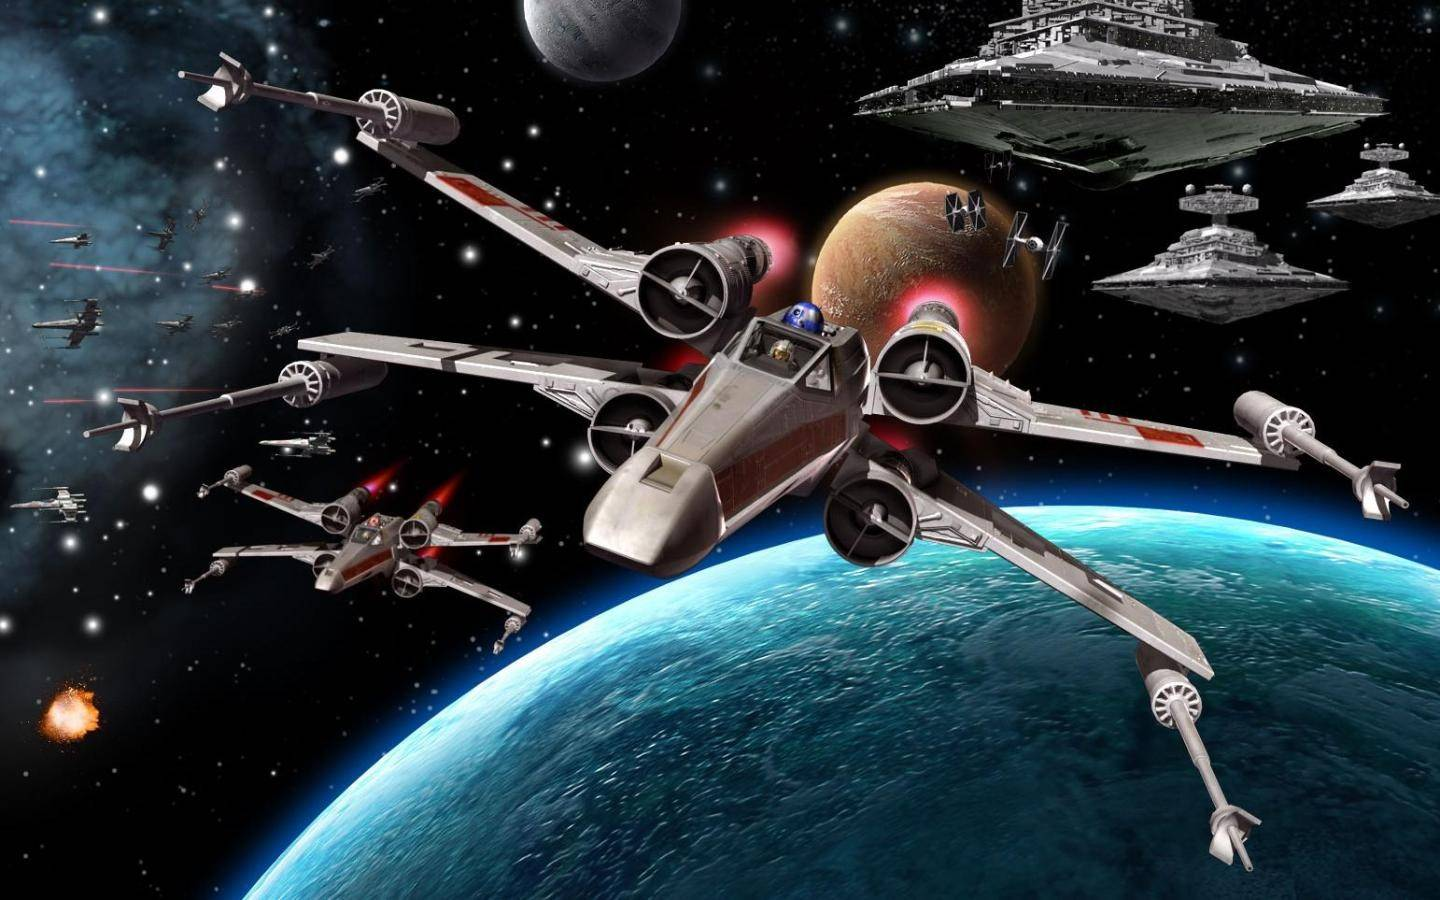 Free Download X Wing Wallpapers 1440x900 For Your Desktop